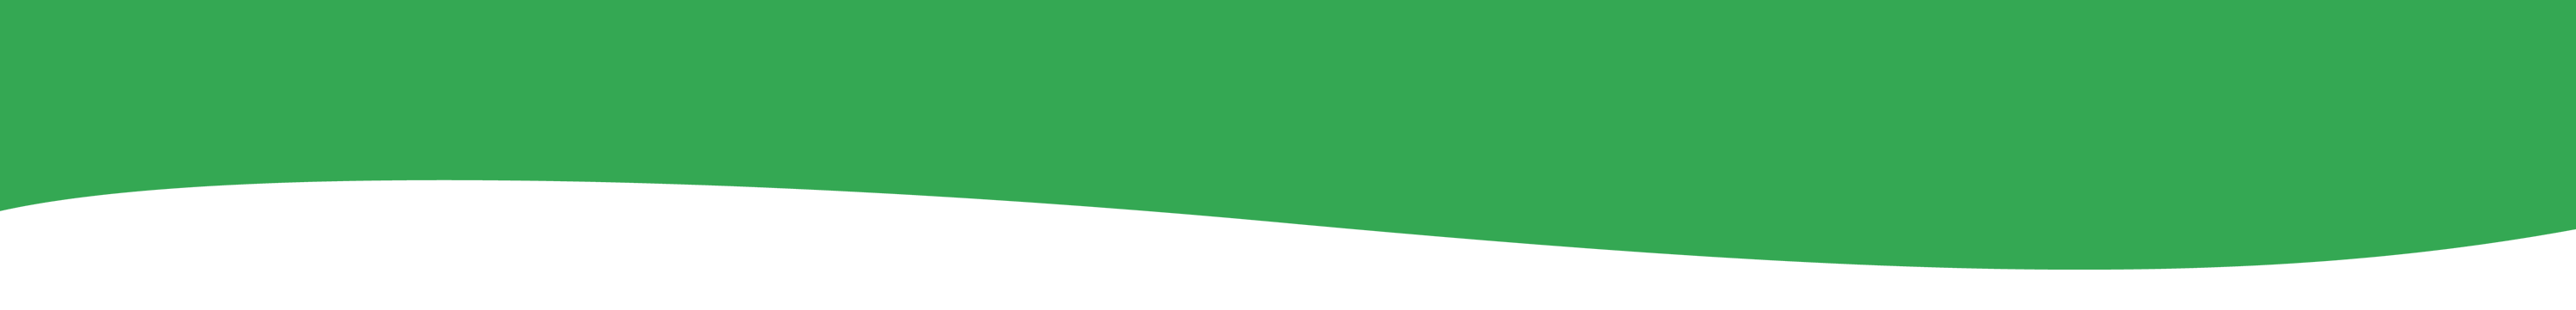 waves-green-2.png